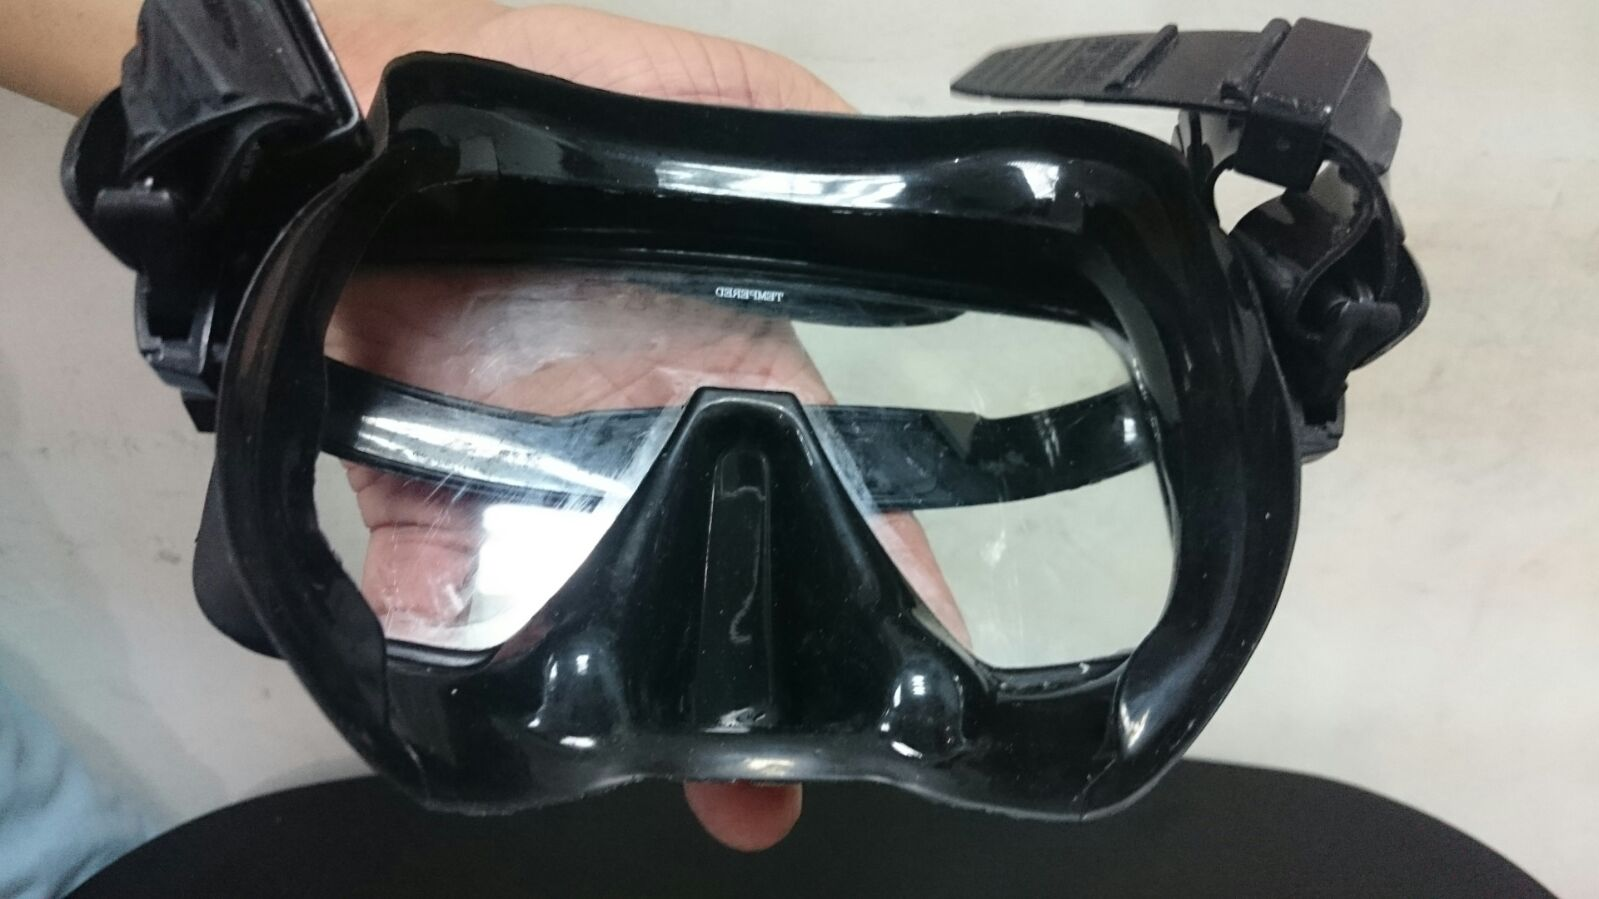 Ways To Stop Your Scuba Diving Mask From Fogging